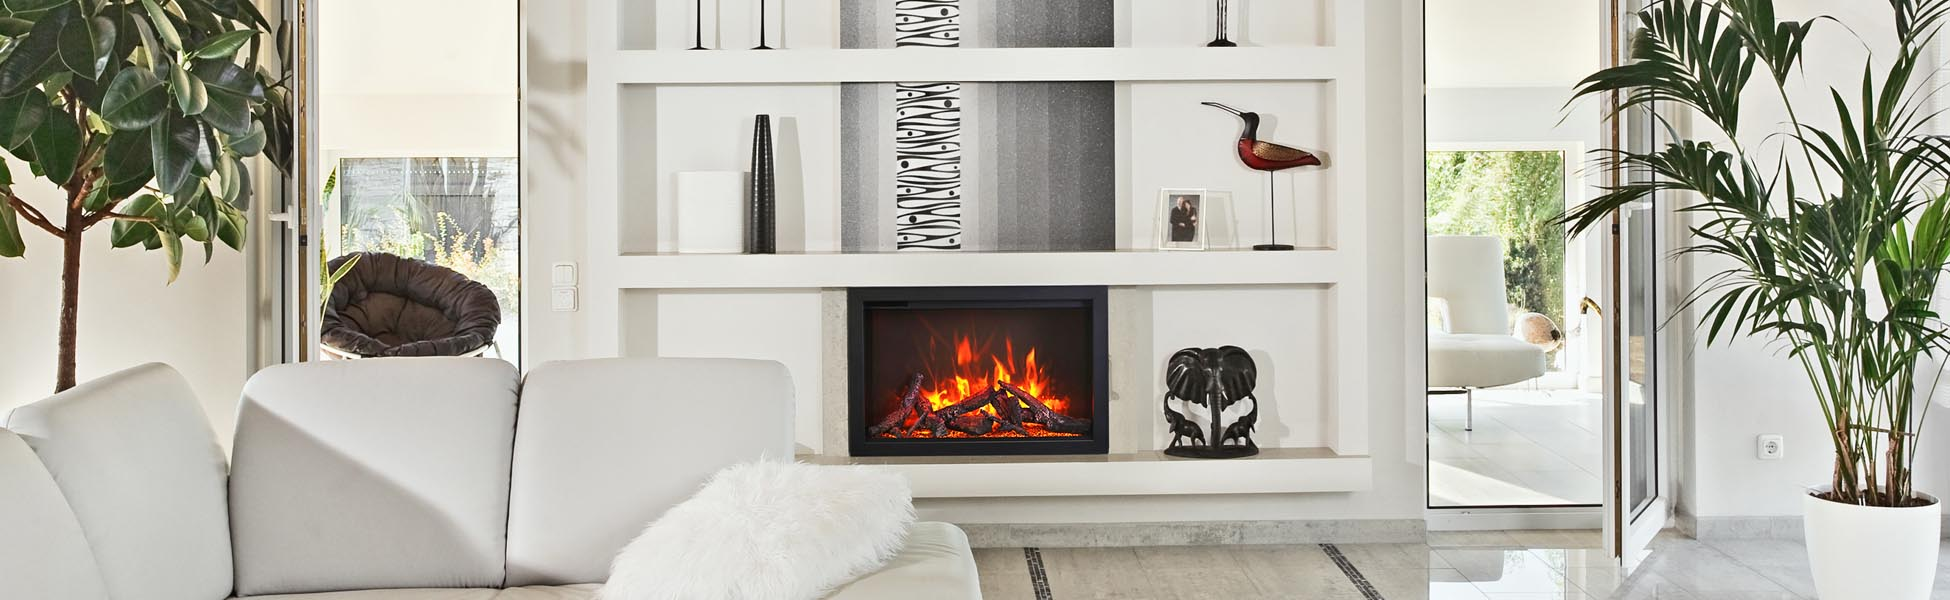 TRD electric fireplace